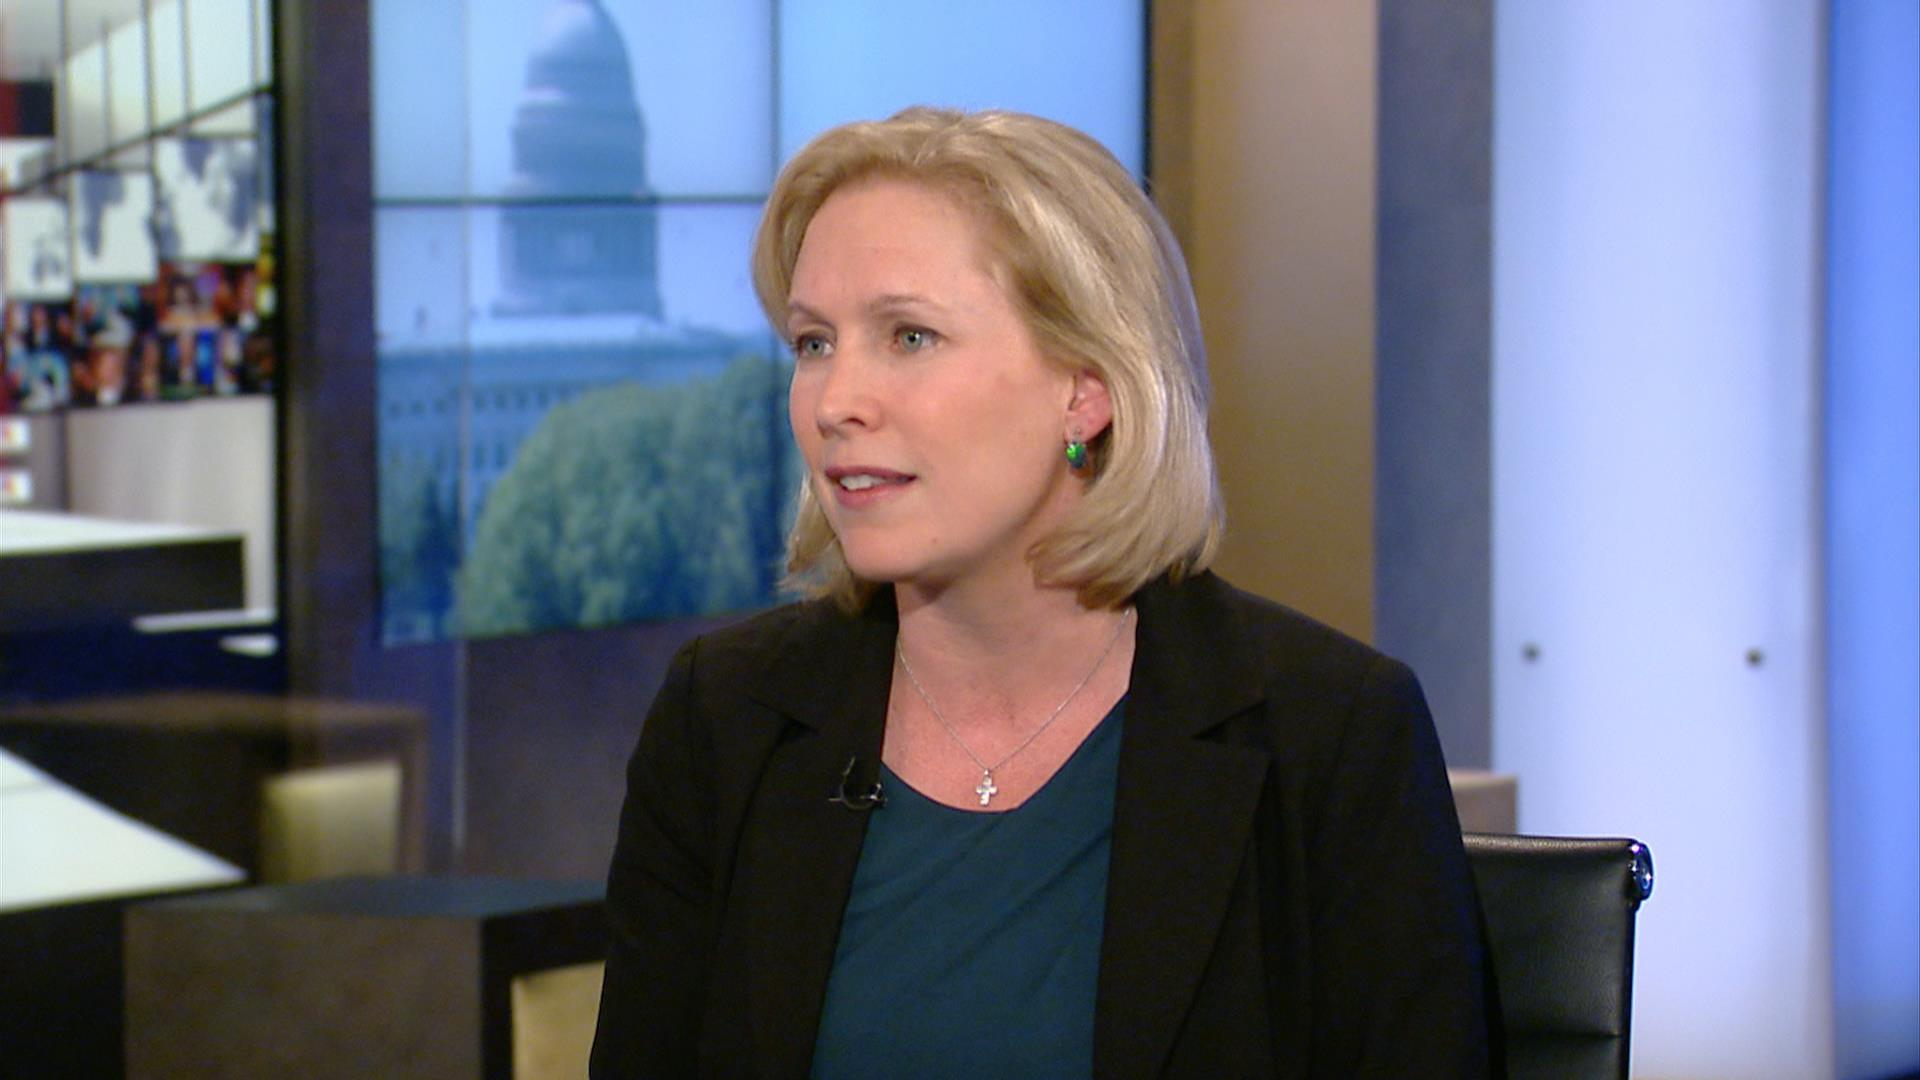 Gillibrand: Sexism exists in all professions